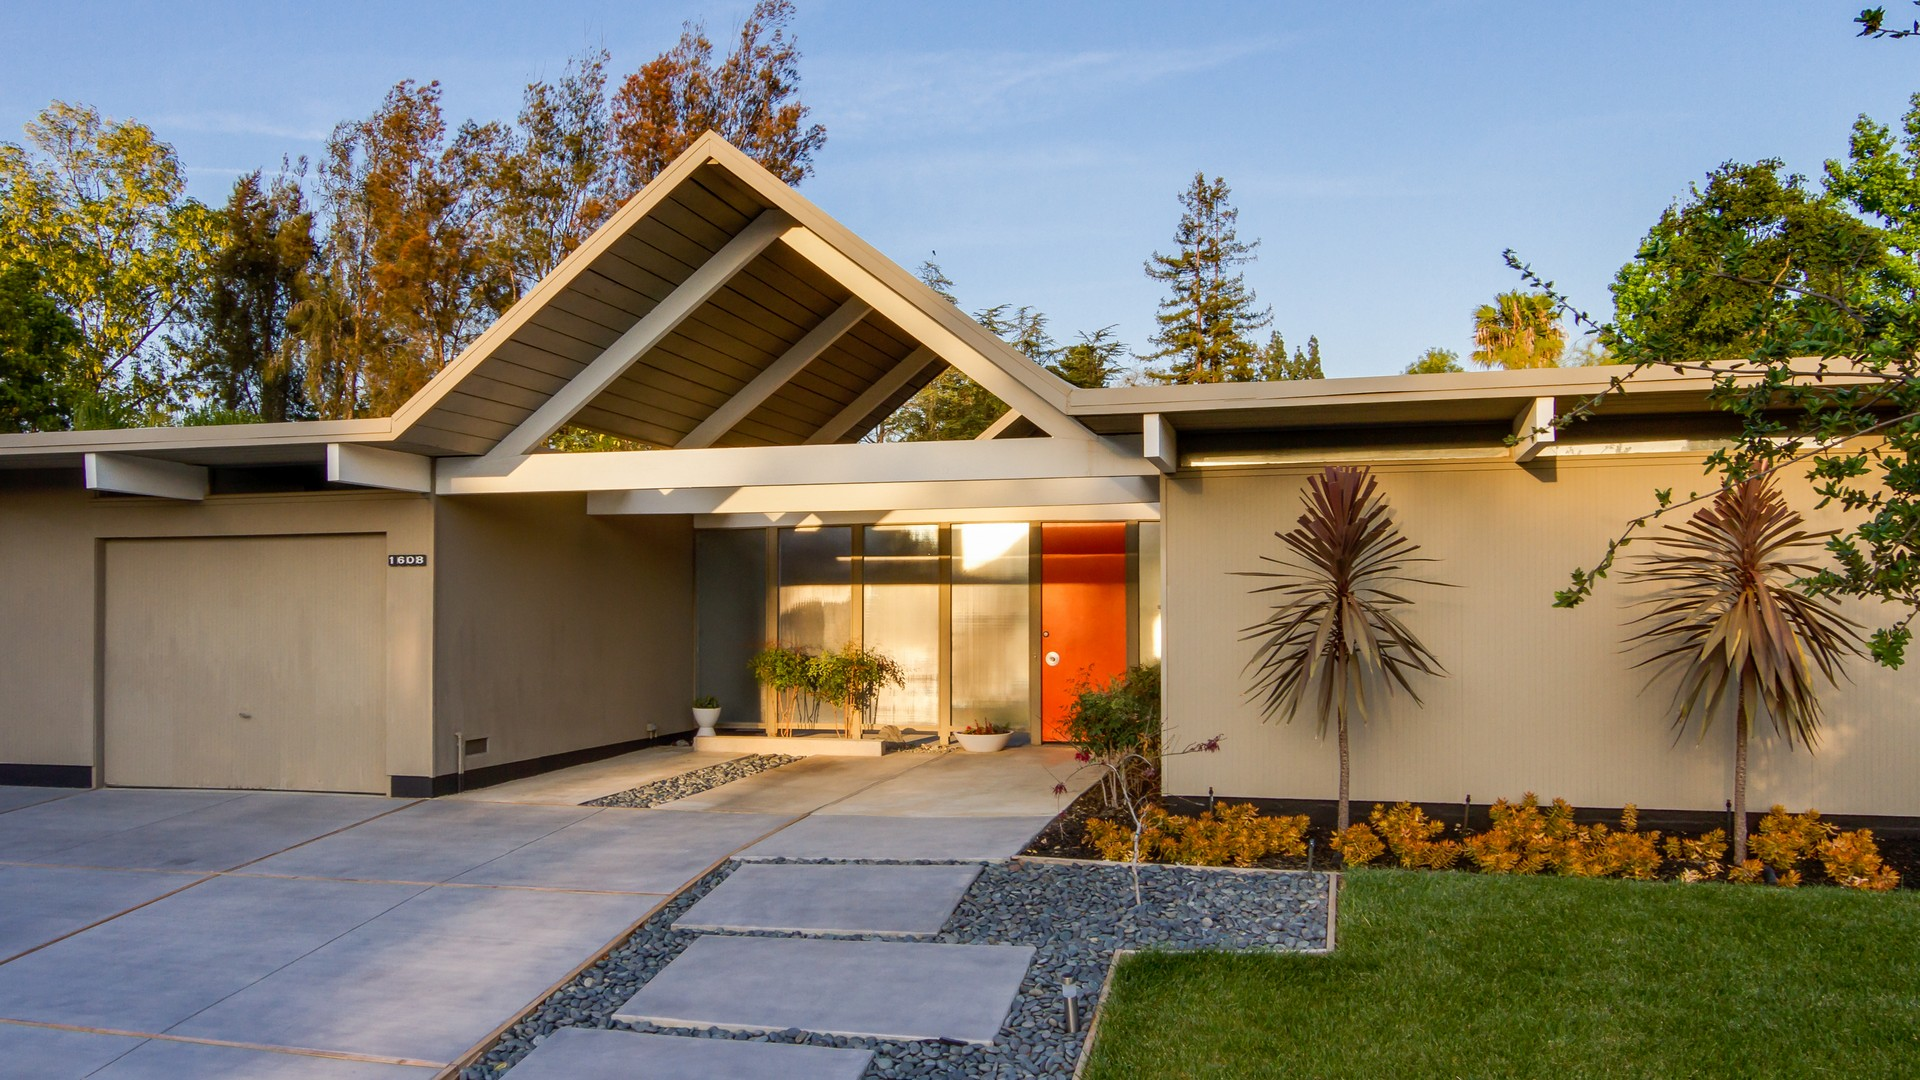 Thousand Oaks Eichler Homes | Eichlers for sale in Thousand Oaks Calfornia